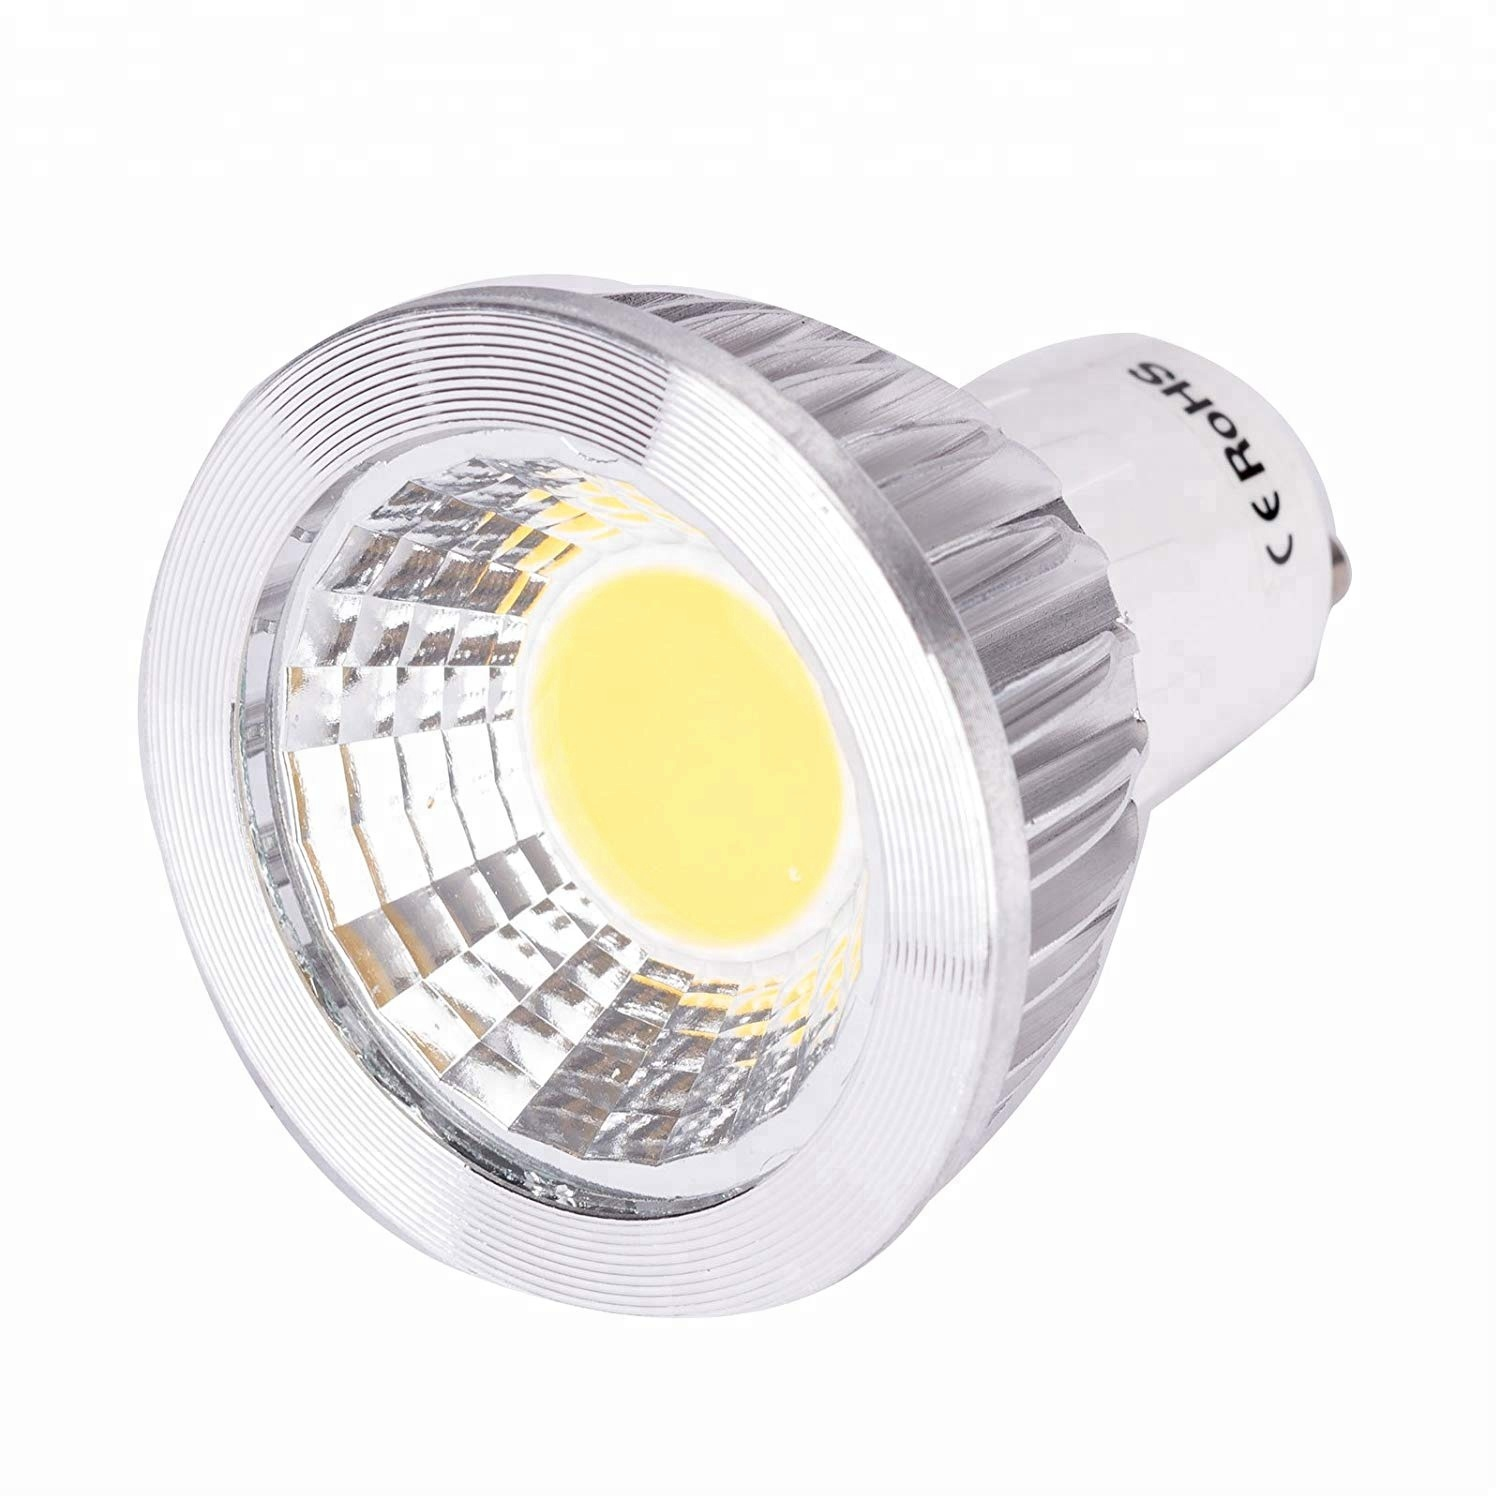 Gu 10 Best Selling Products Lamp Gu10 Infrared Gu16 Bulb Of Good Seals